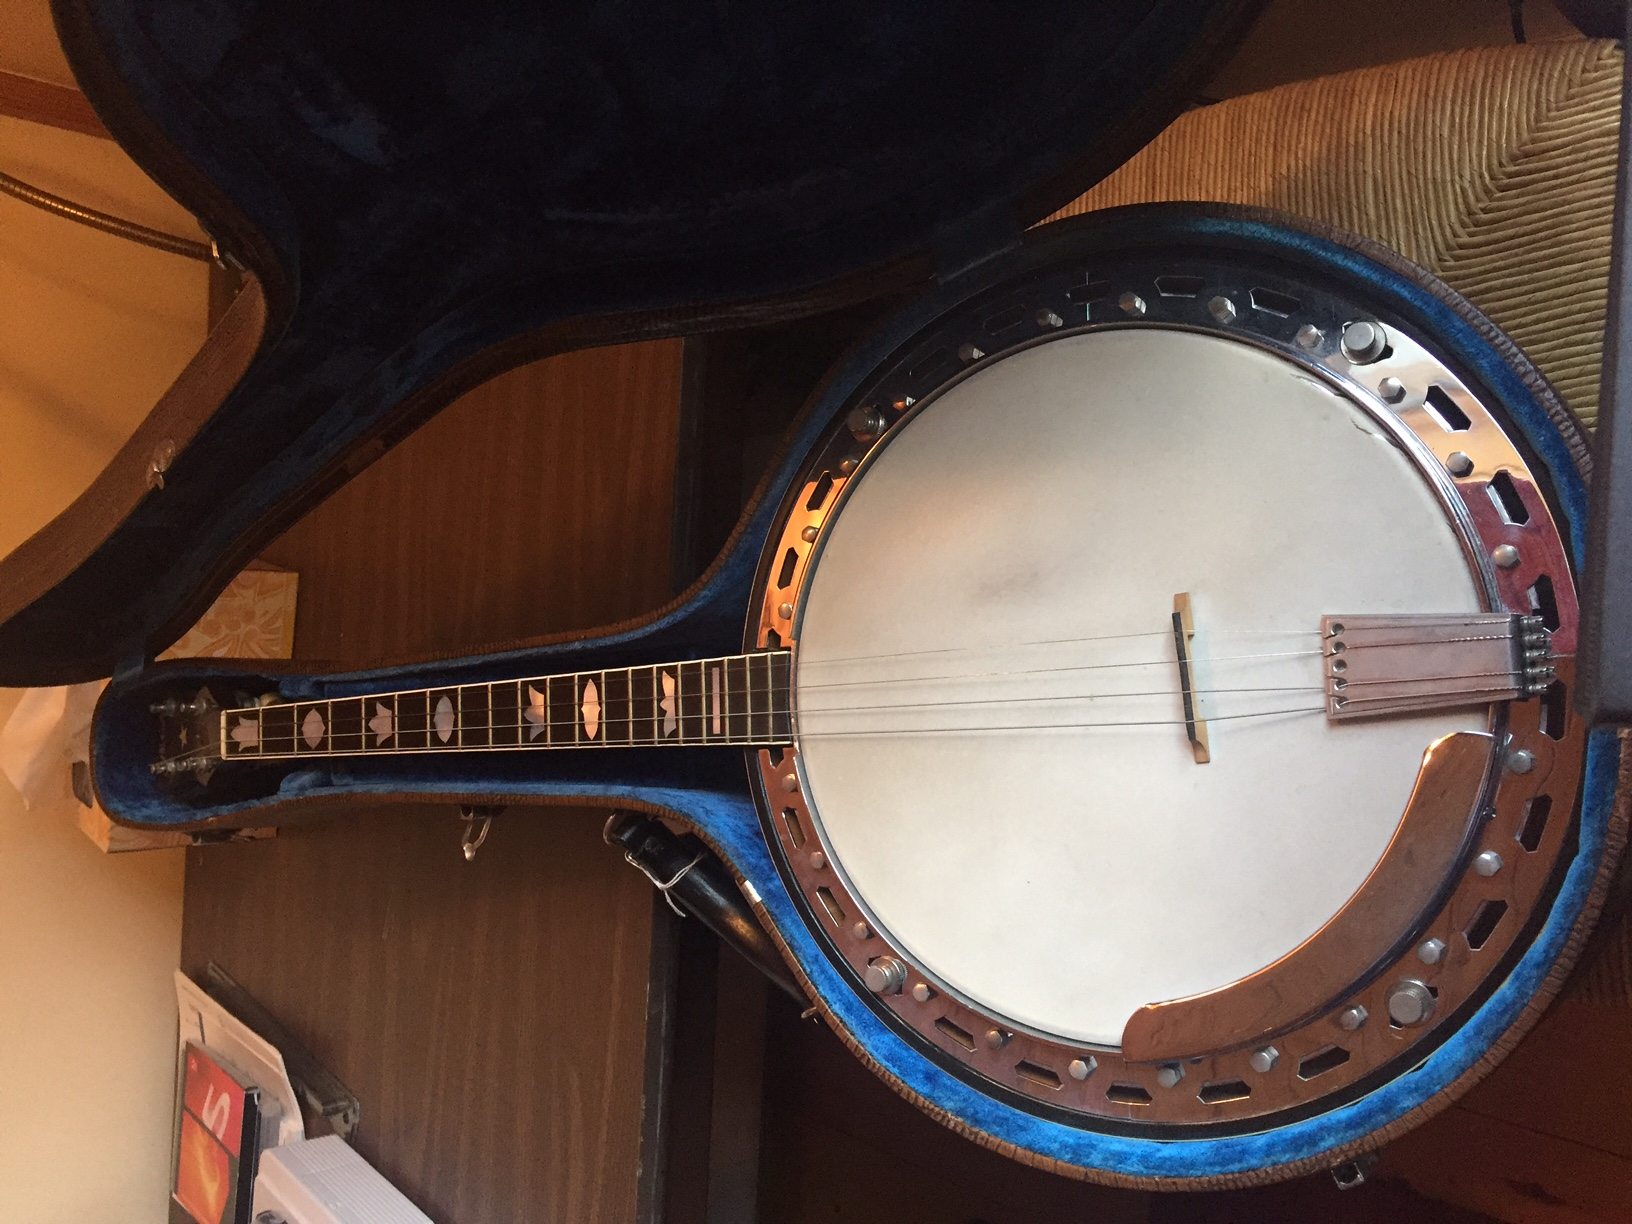 I have a Vega banjo in original case, don't know what the